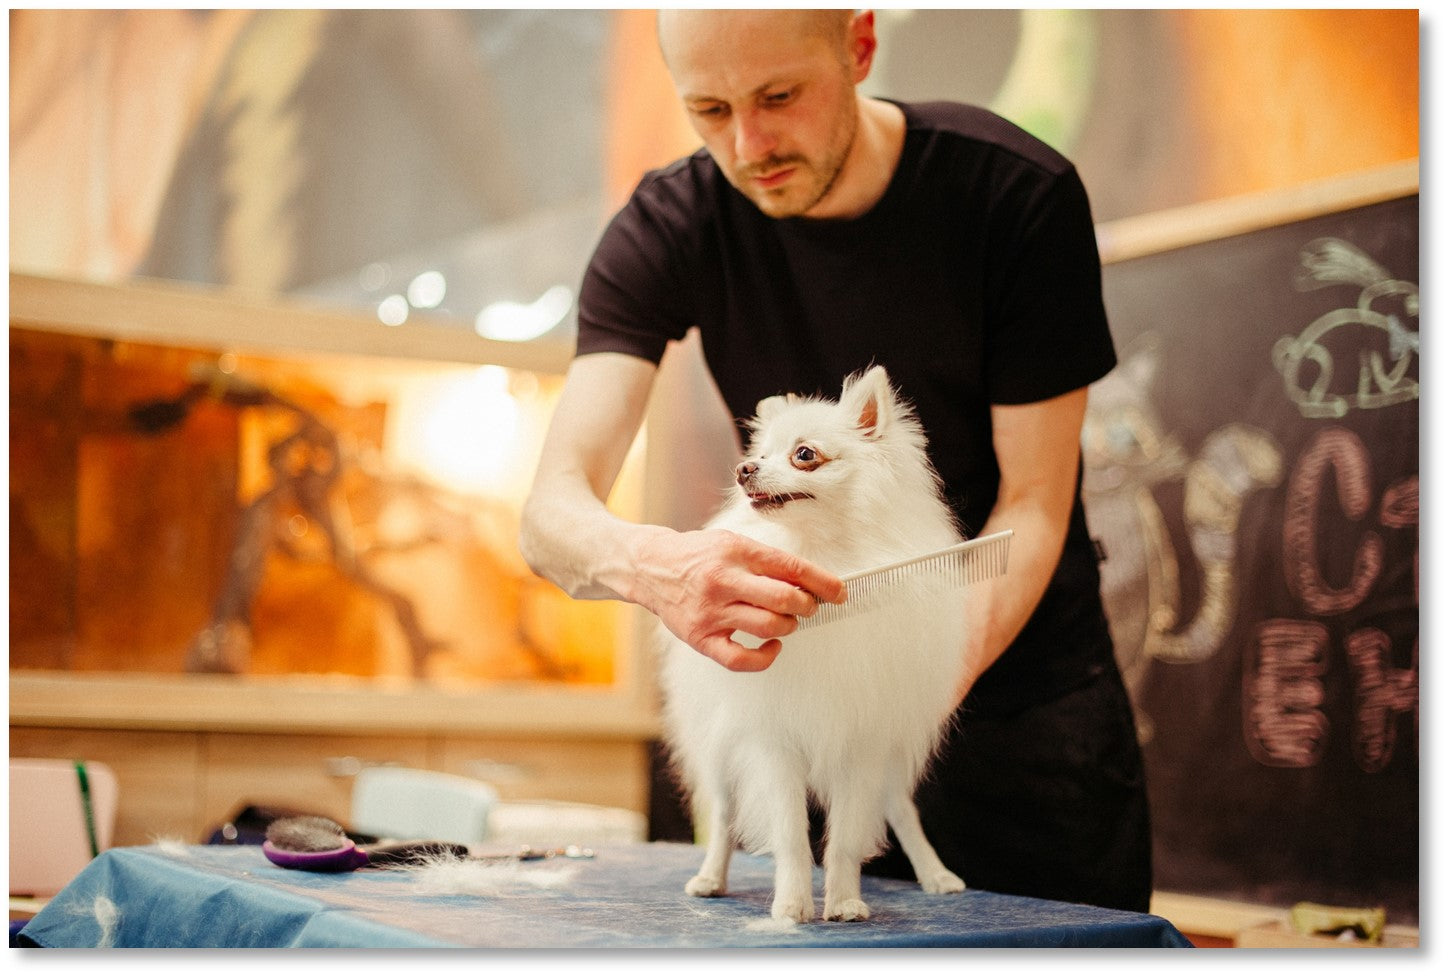 Penny Lou UK Blog   Bond With Your Dog - Man grooming a white dog